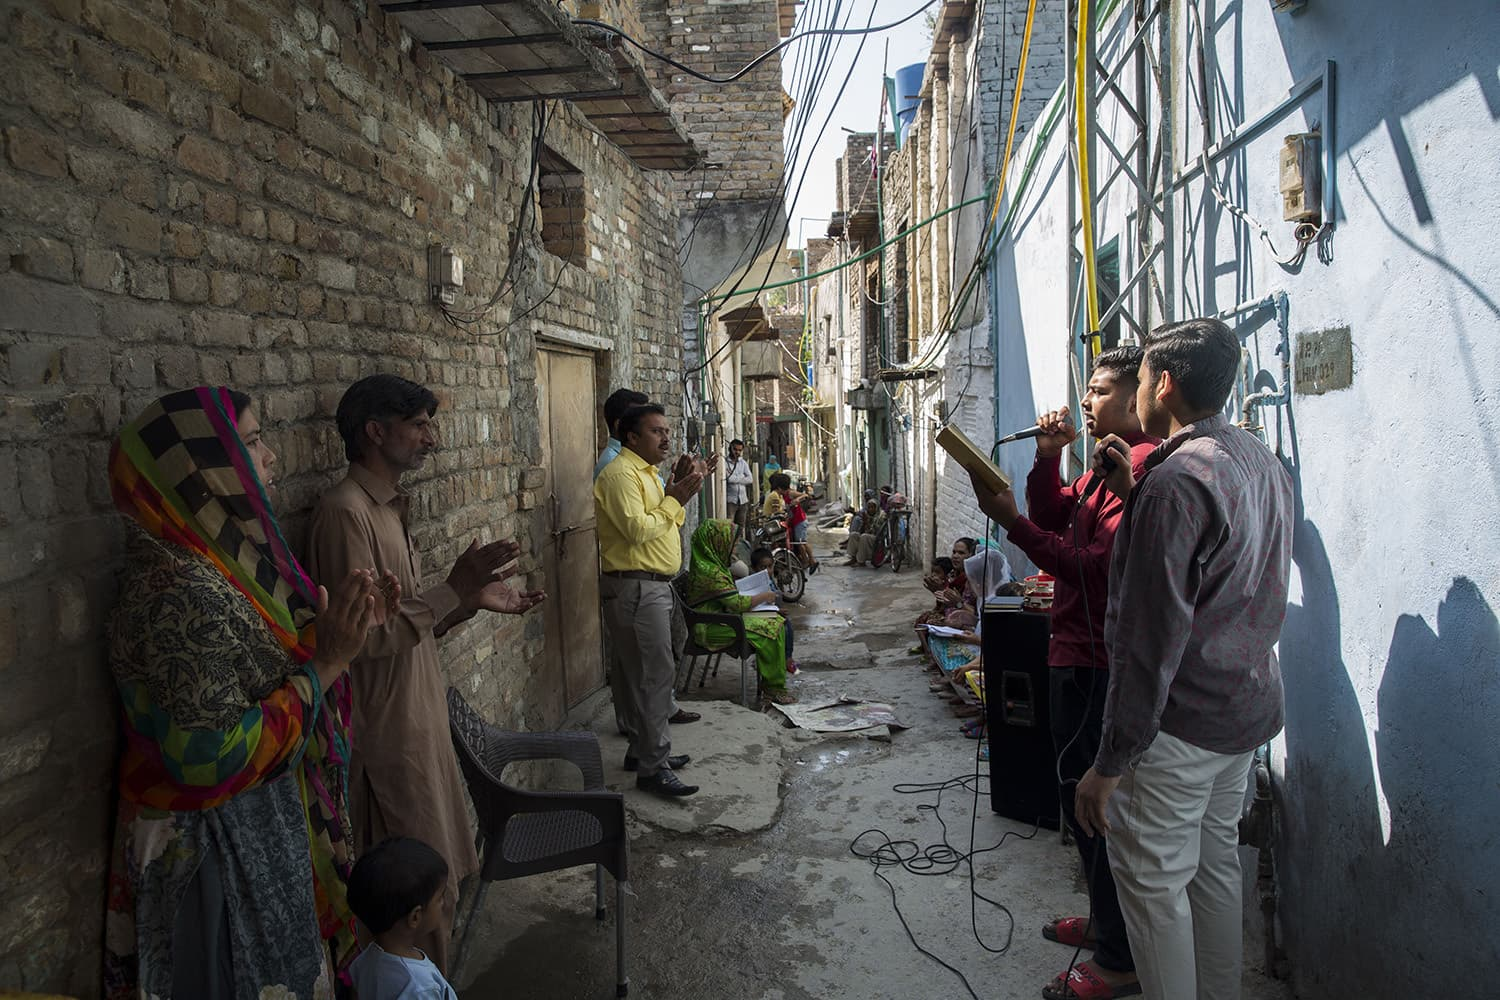 Arif Masih attends the Sunday mass in one of the streets in his neighbourhood along with his wife Ishrat and daughter Cynthia. Mosques in Pakistan remained open during the month of Ramazan but churches have remained closed until very recently. Photograph taken on May 10, 2020 in Islamabad.